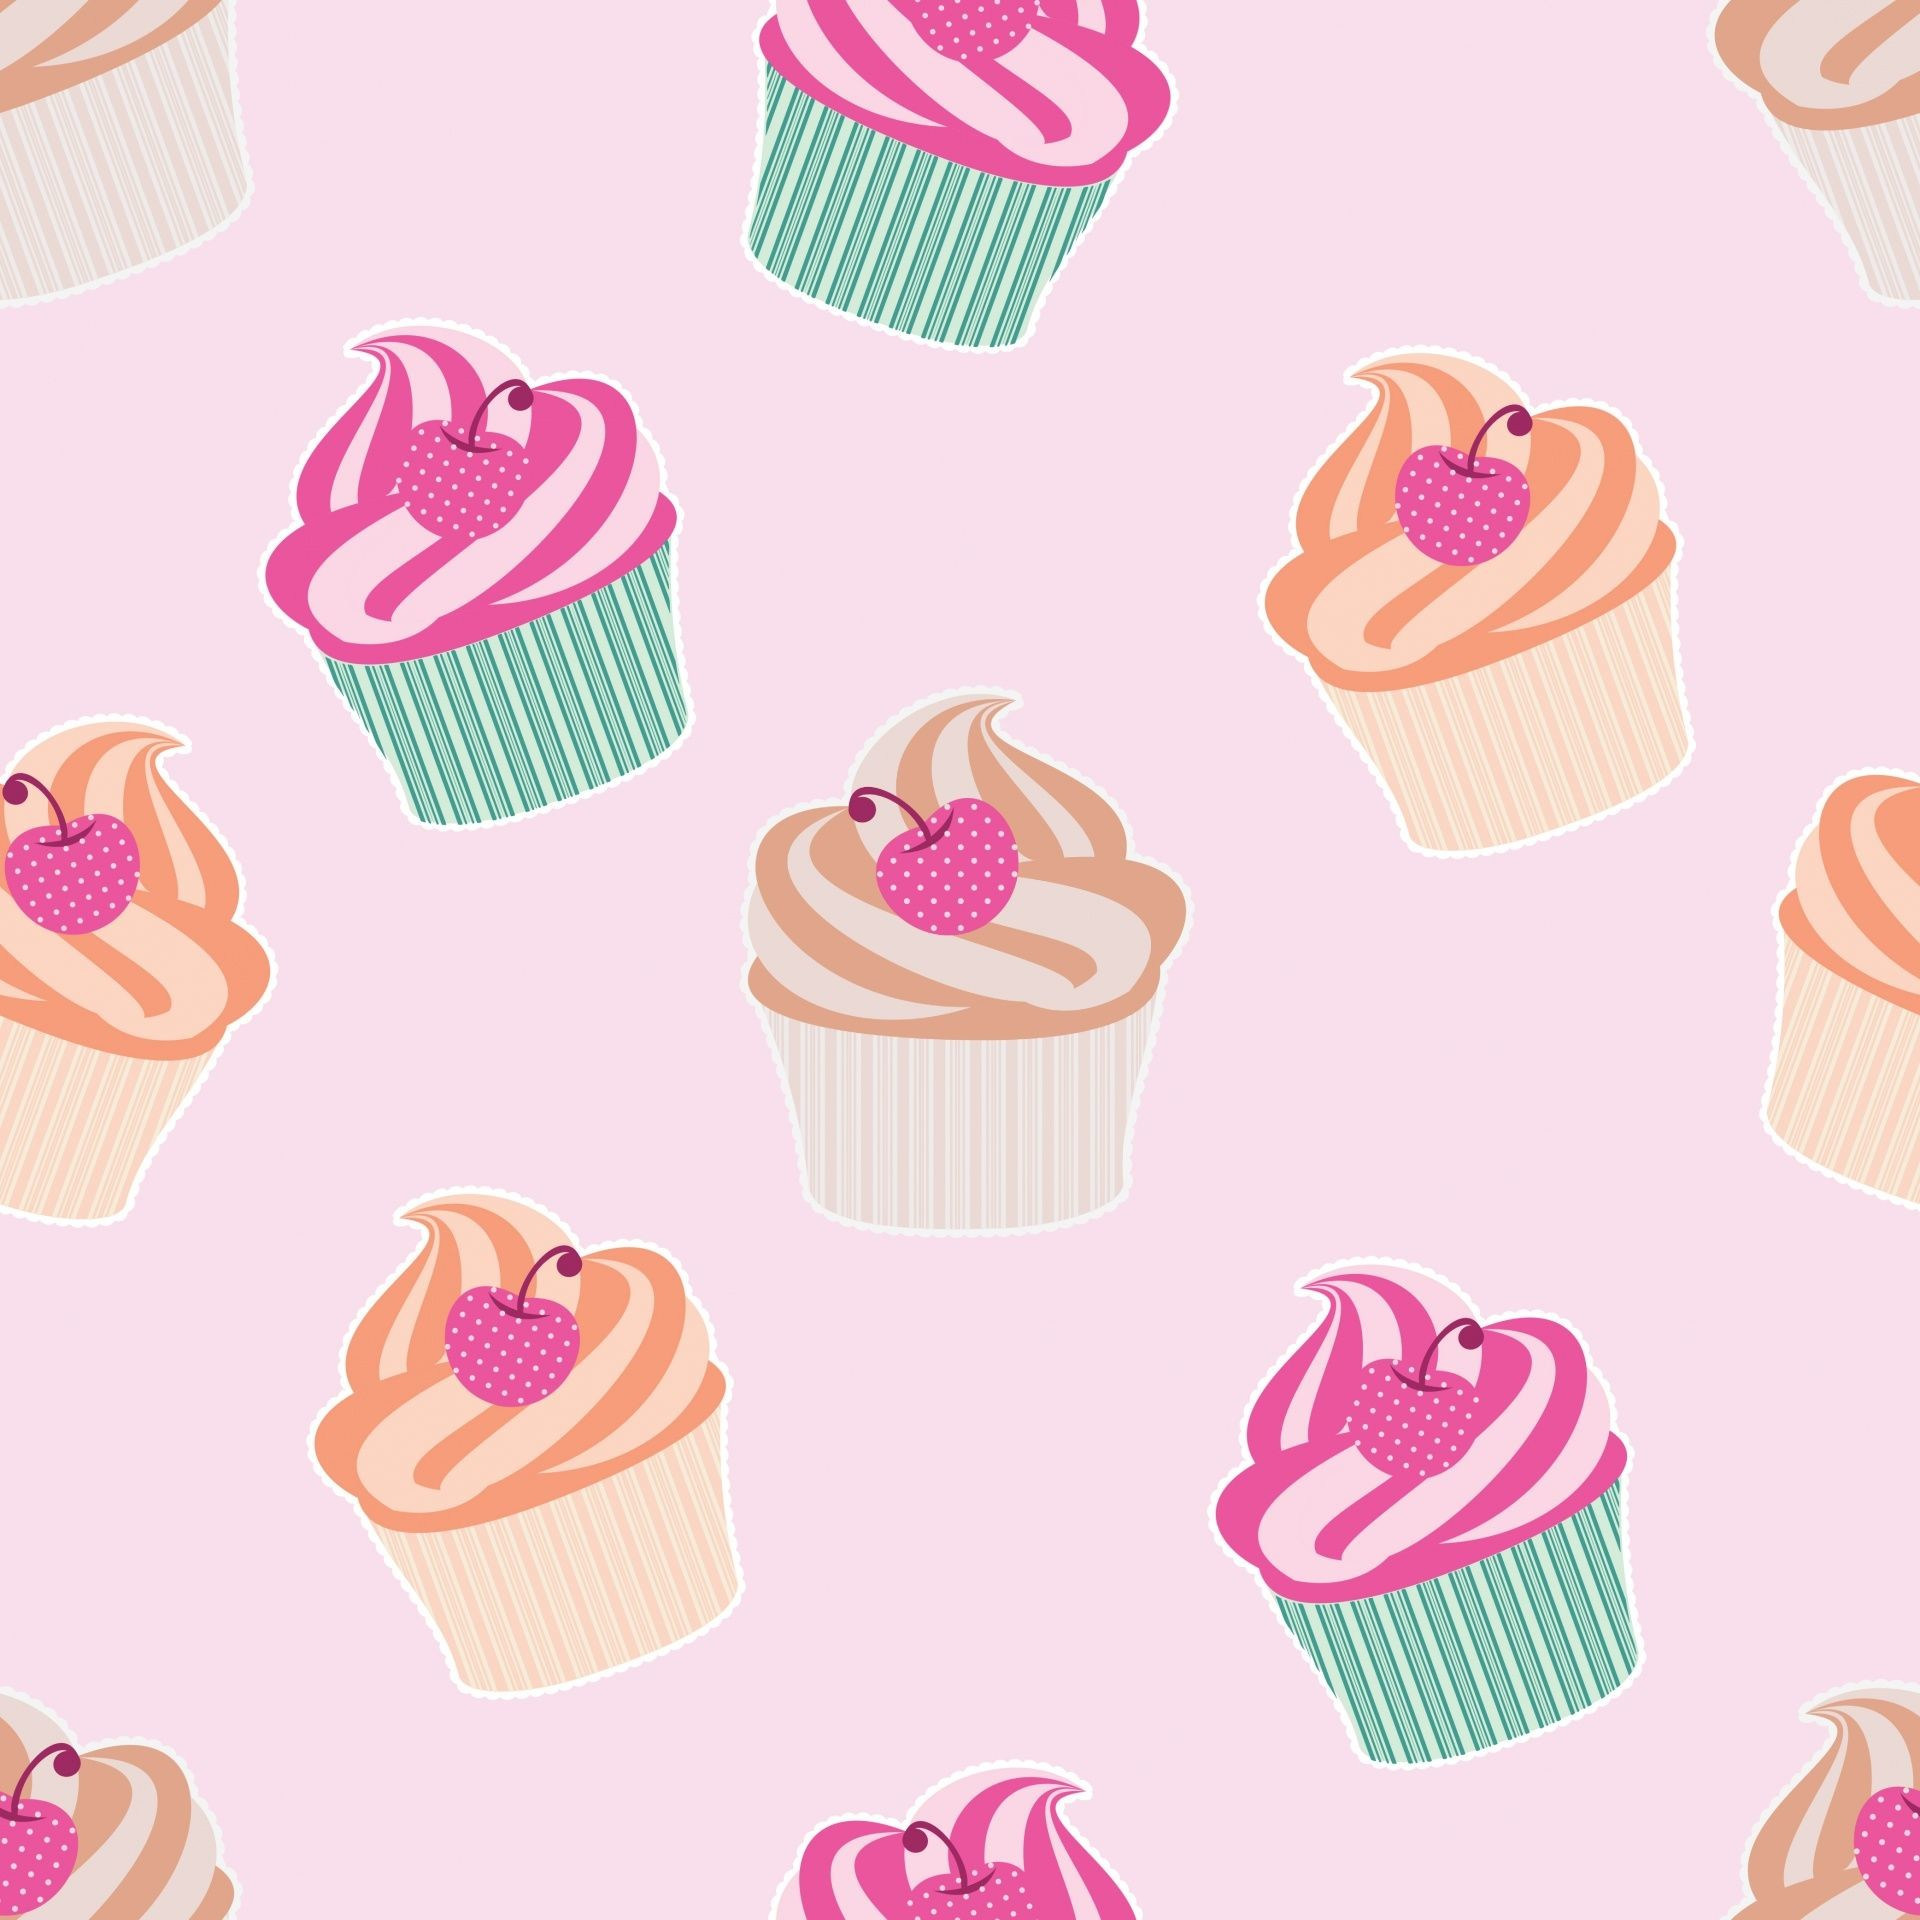 Res: 1920x1920, Cute Cupcake Backgrounds Wallpaper